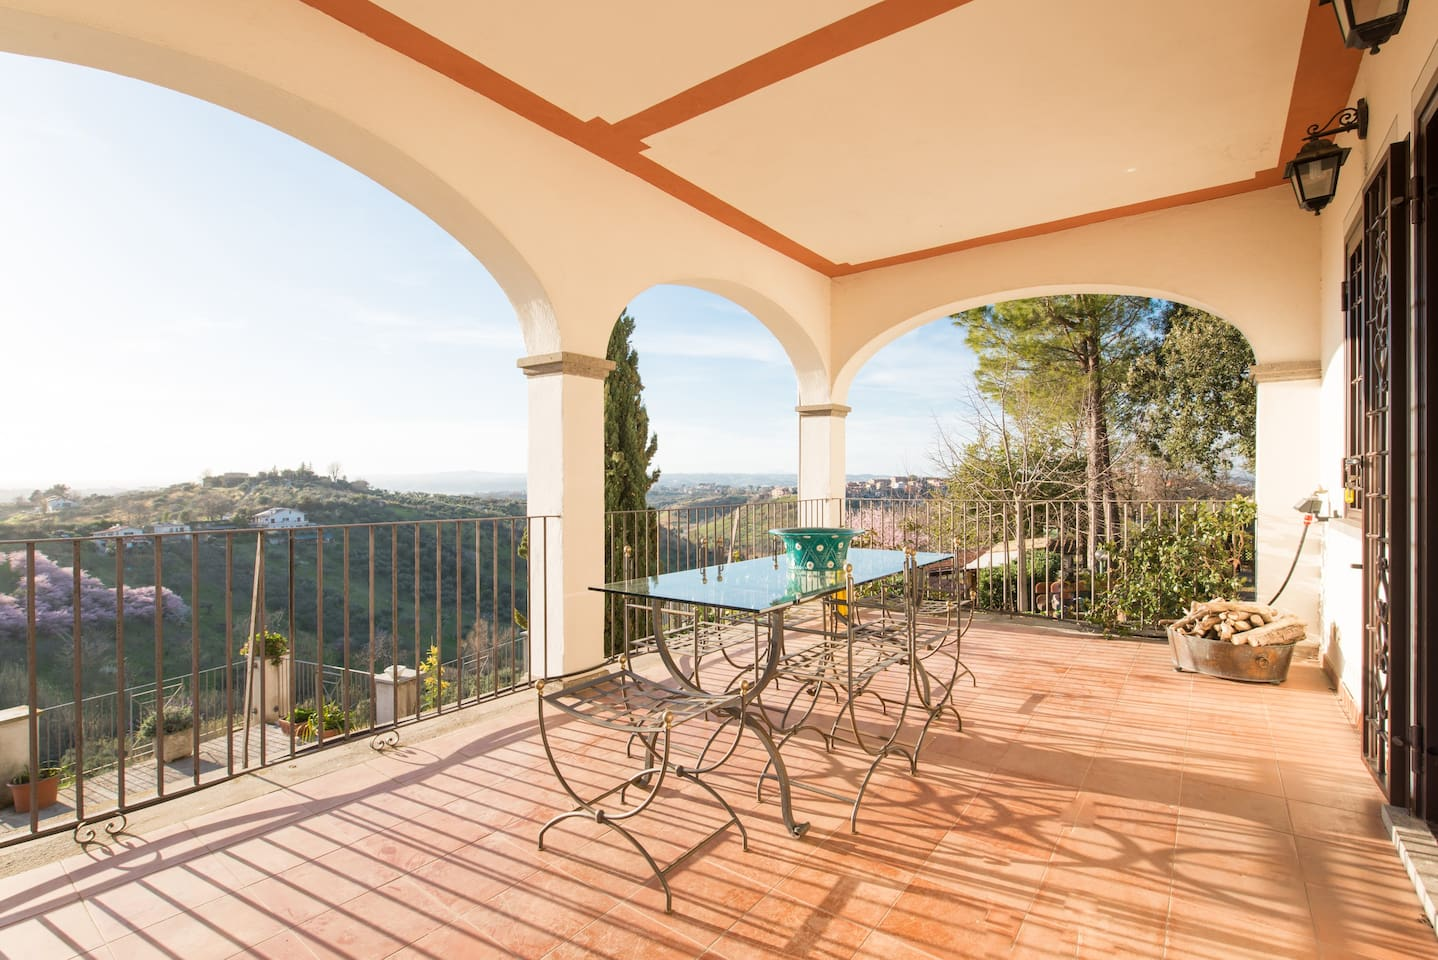 Panoramic terrace on the first floor